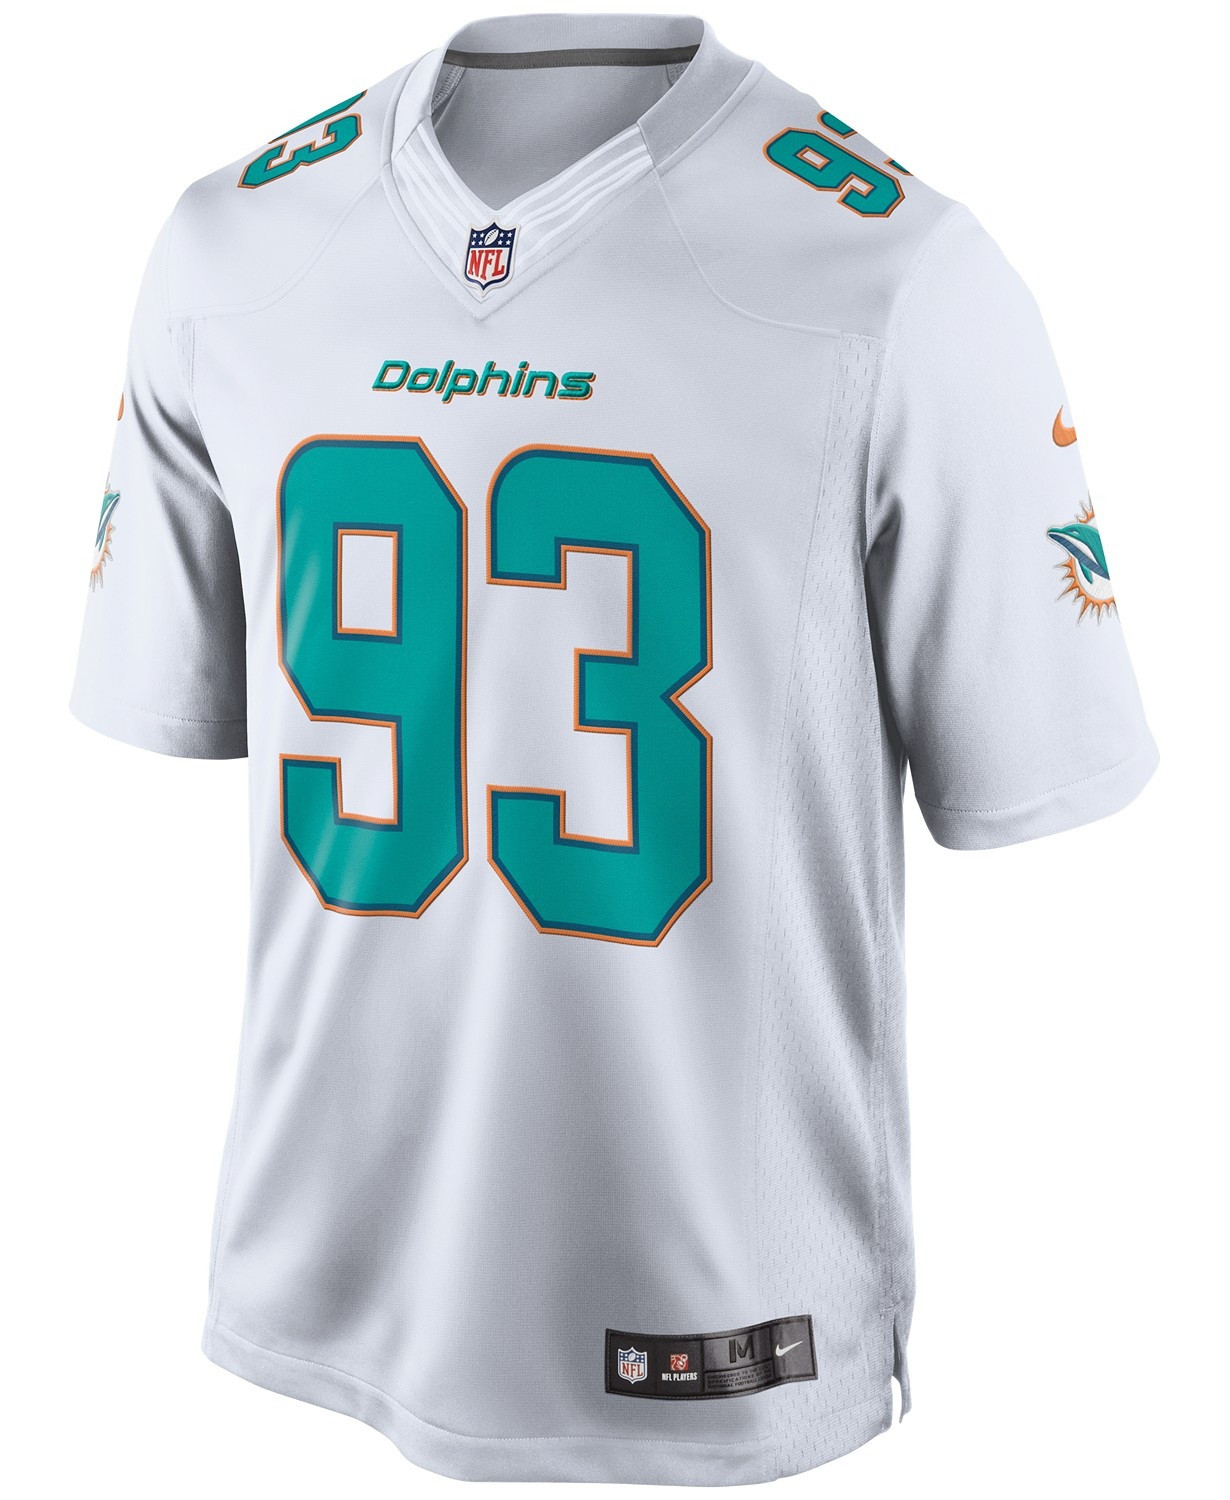 size 40 ea7ad bb761 NFL Men's Ndamukong Suh Miami Dolphins Jersey Size Large ...